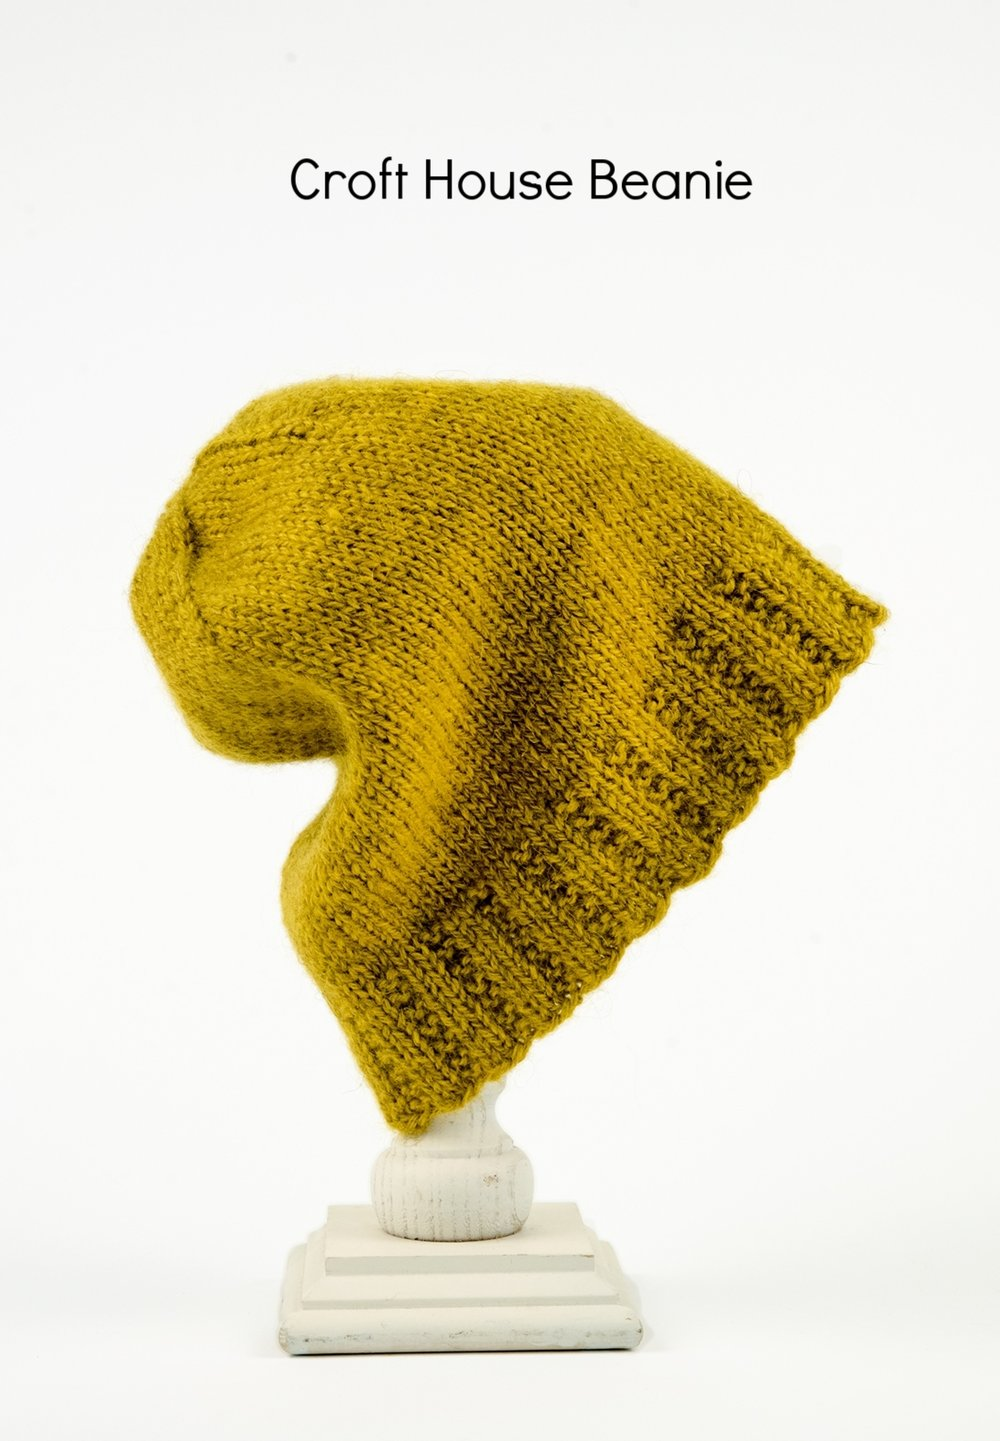 Croft House Beanie in The Fibre Co. Cumbria